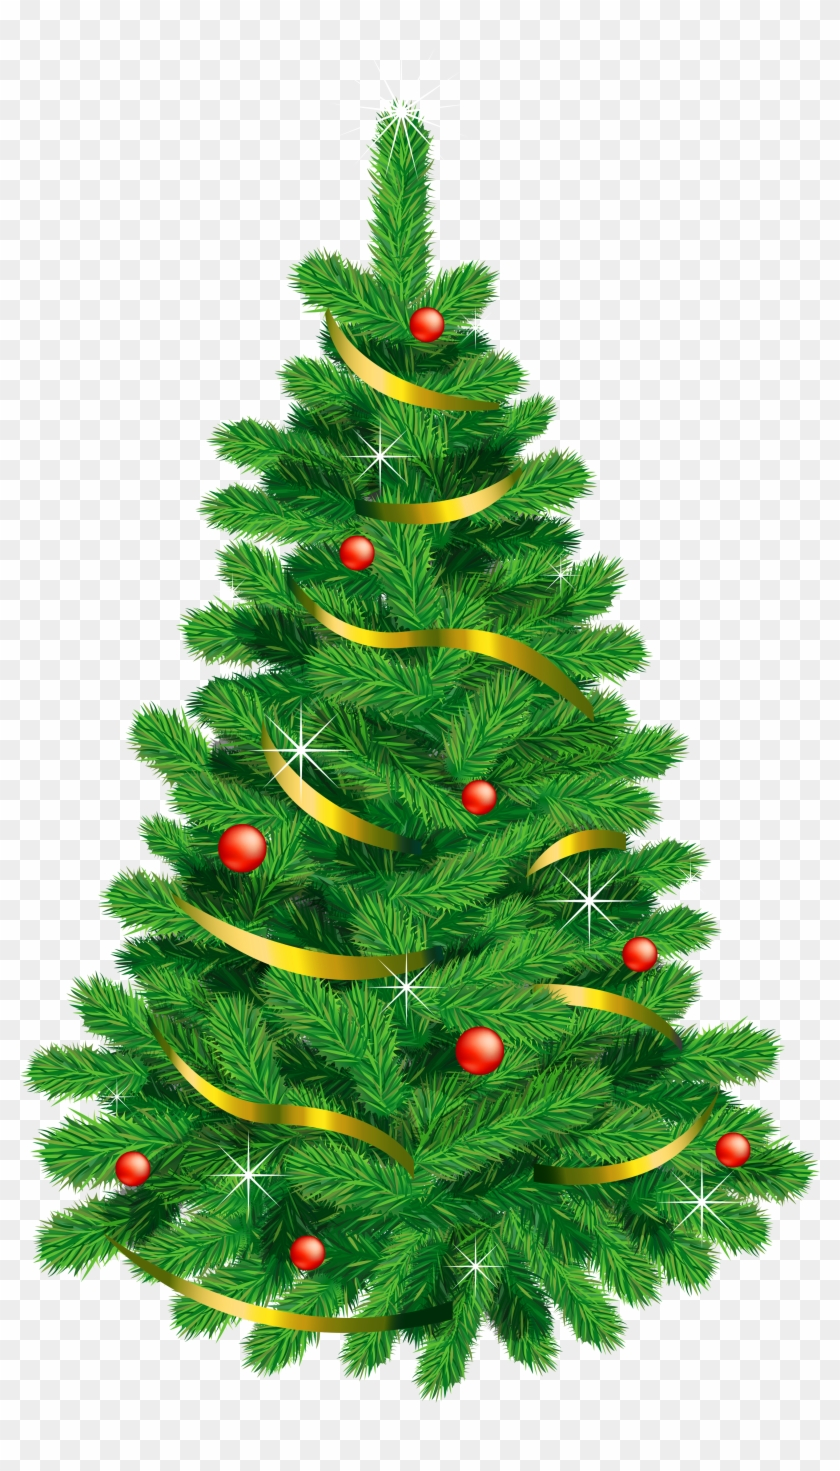 Transparent Green Deco Christmas Tree Tree Gif Images Free Download Free Transparent Png Clipart Images Download